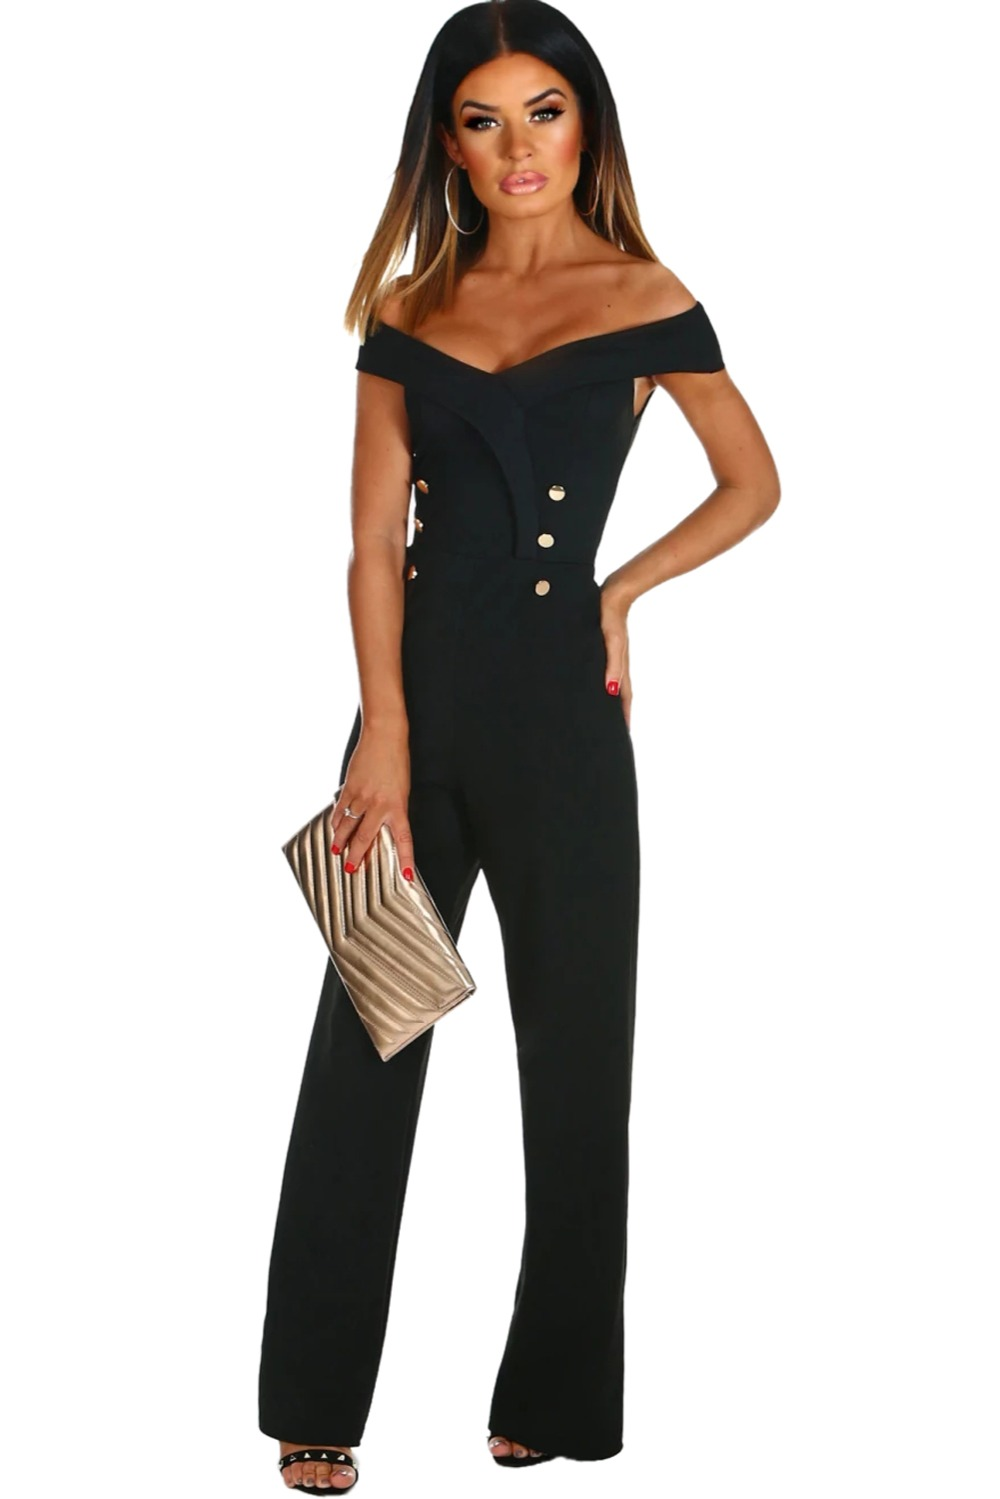 09b5f87778b 2019 Only You Jumpsuit 2018 New Sexy Party Fashion Black Off The ...